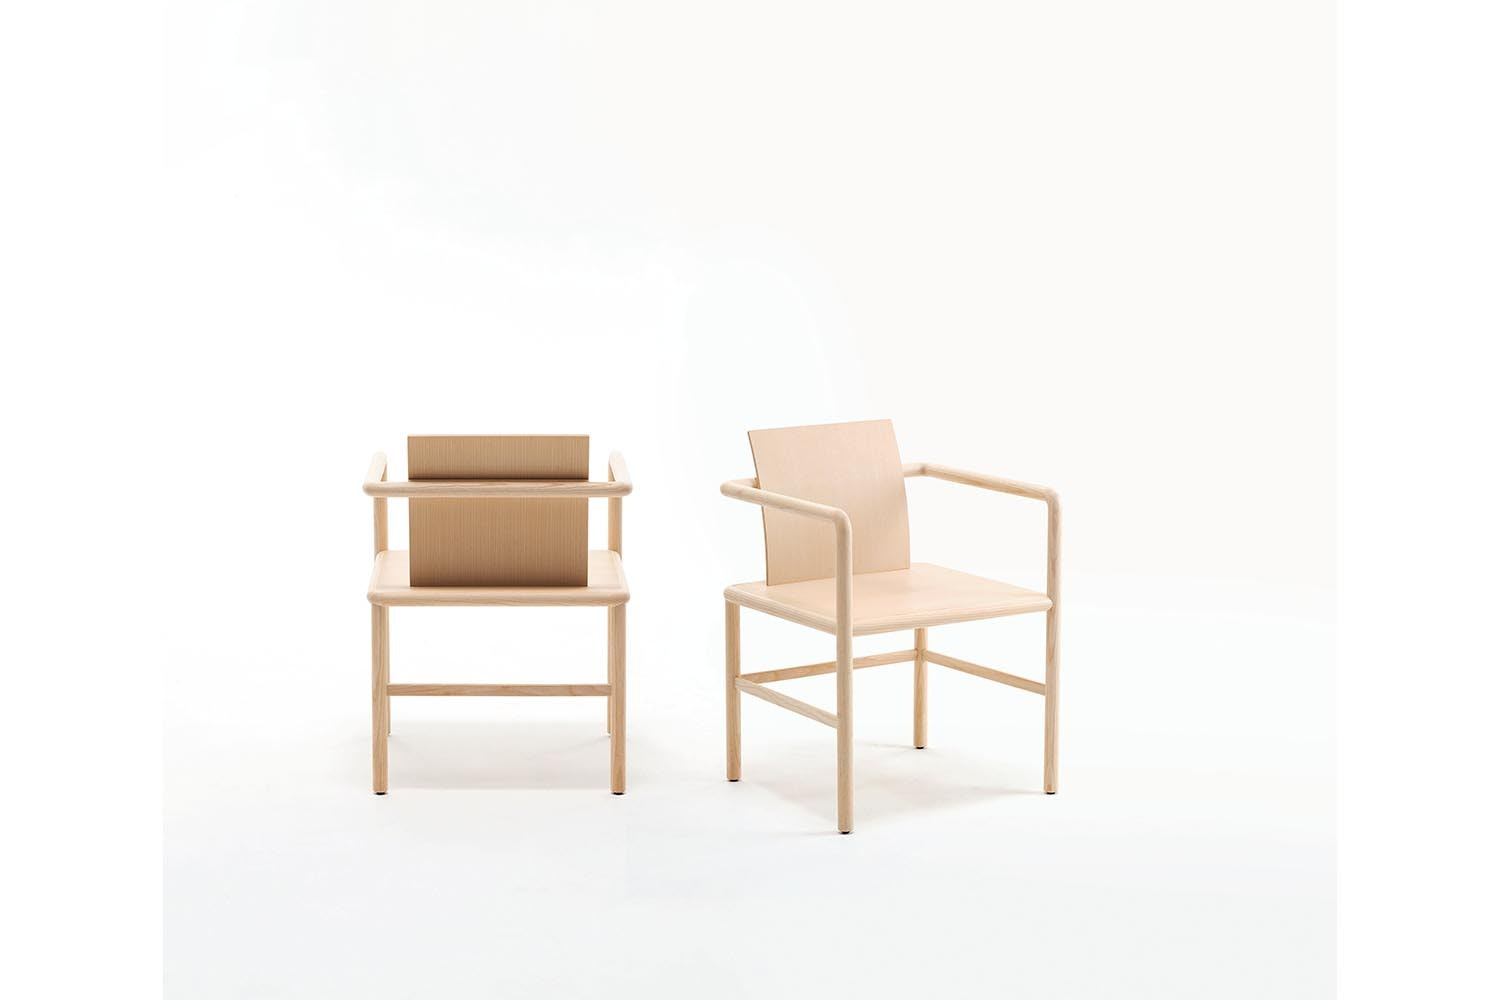 Zhu Chair with Arms by Piero Lissoni for Glas Italia